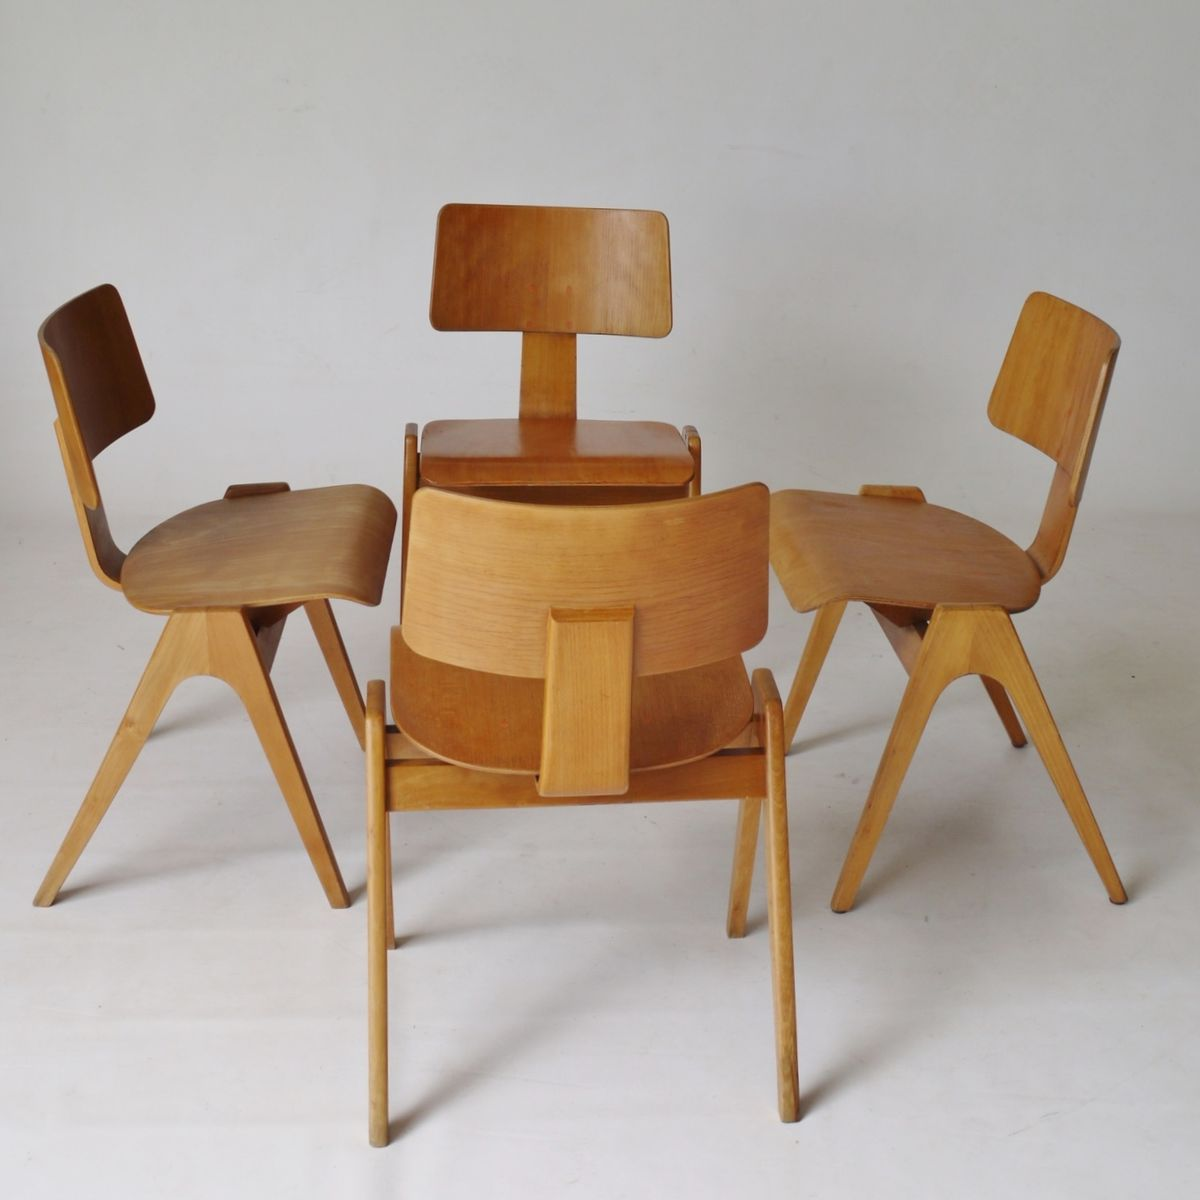 Hillestak Chairs By Robin Day For Hillie 1950s Set Of 4 For Sale At Pamono